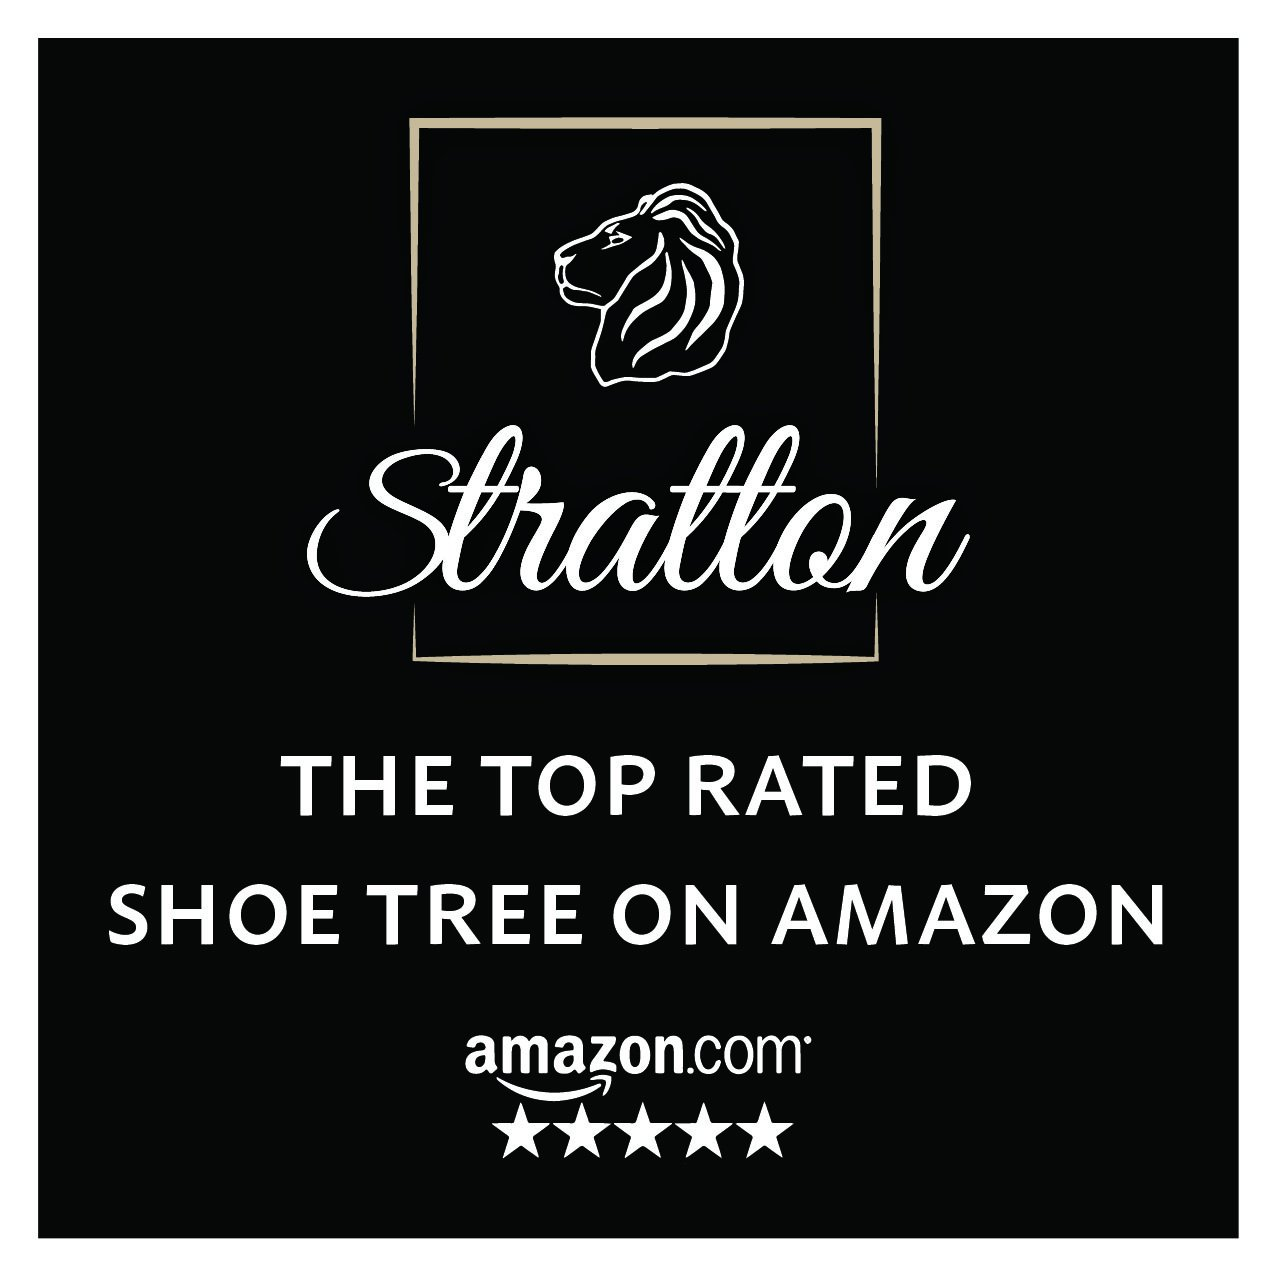 STRATTON MEN'S CEDAR SHOE TREE 2-PACK (for 2 pairs of shoes) (Medium, 2 Pairs, Full Toe) by Stratton (Image #6)